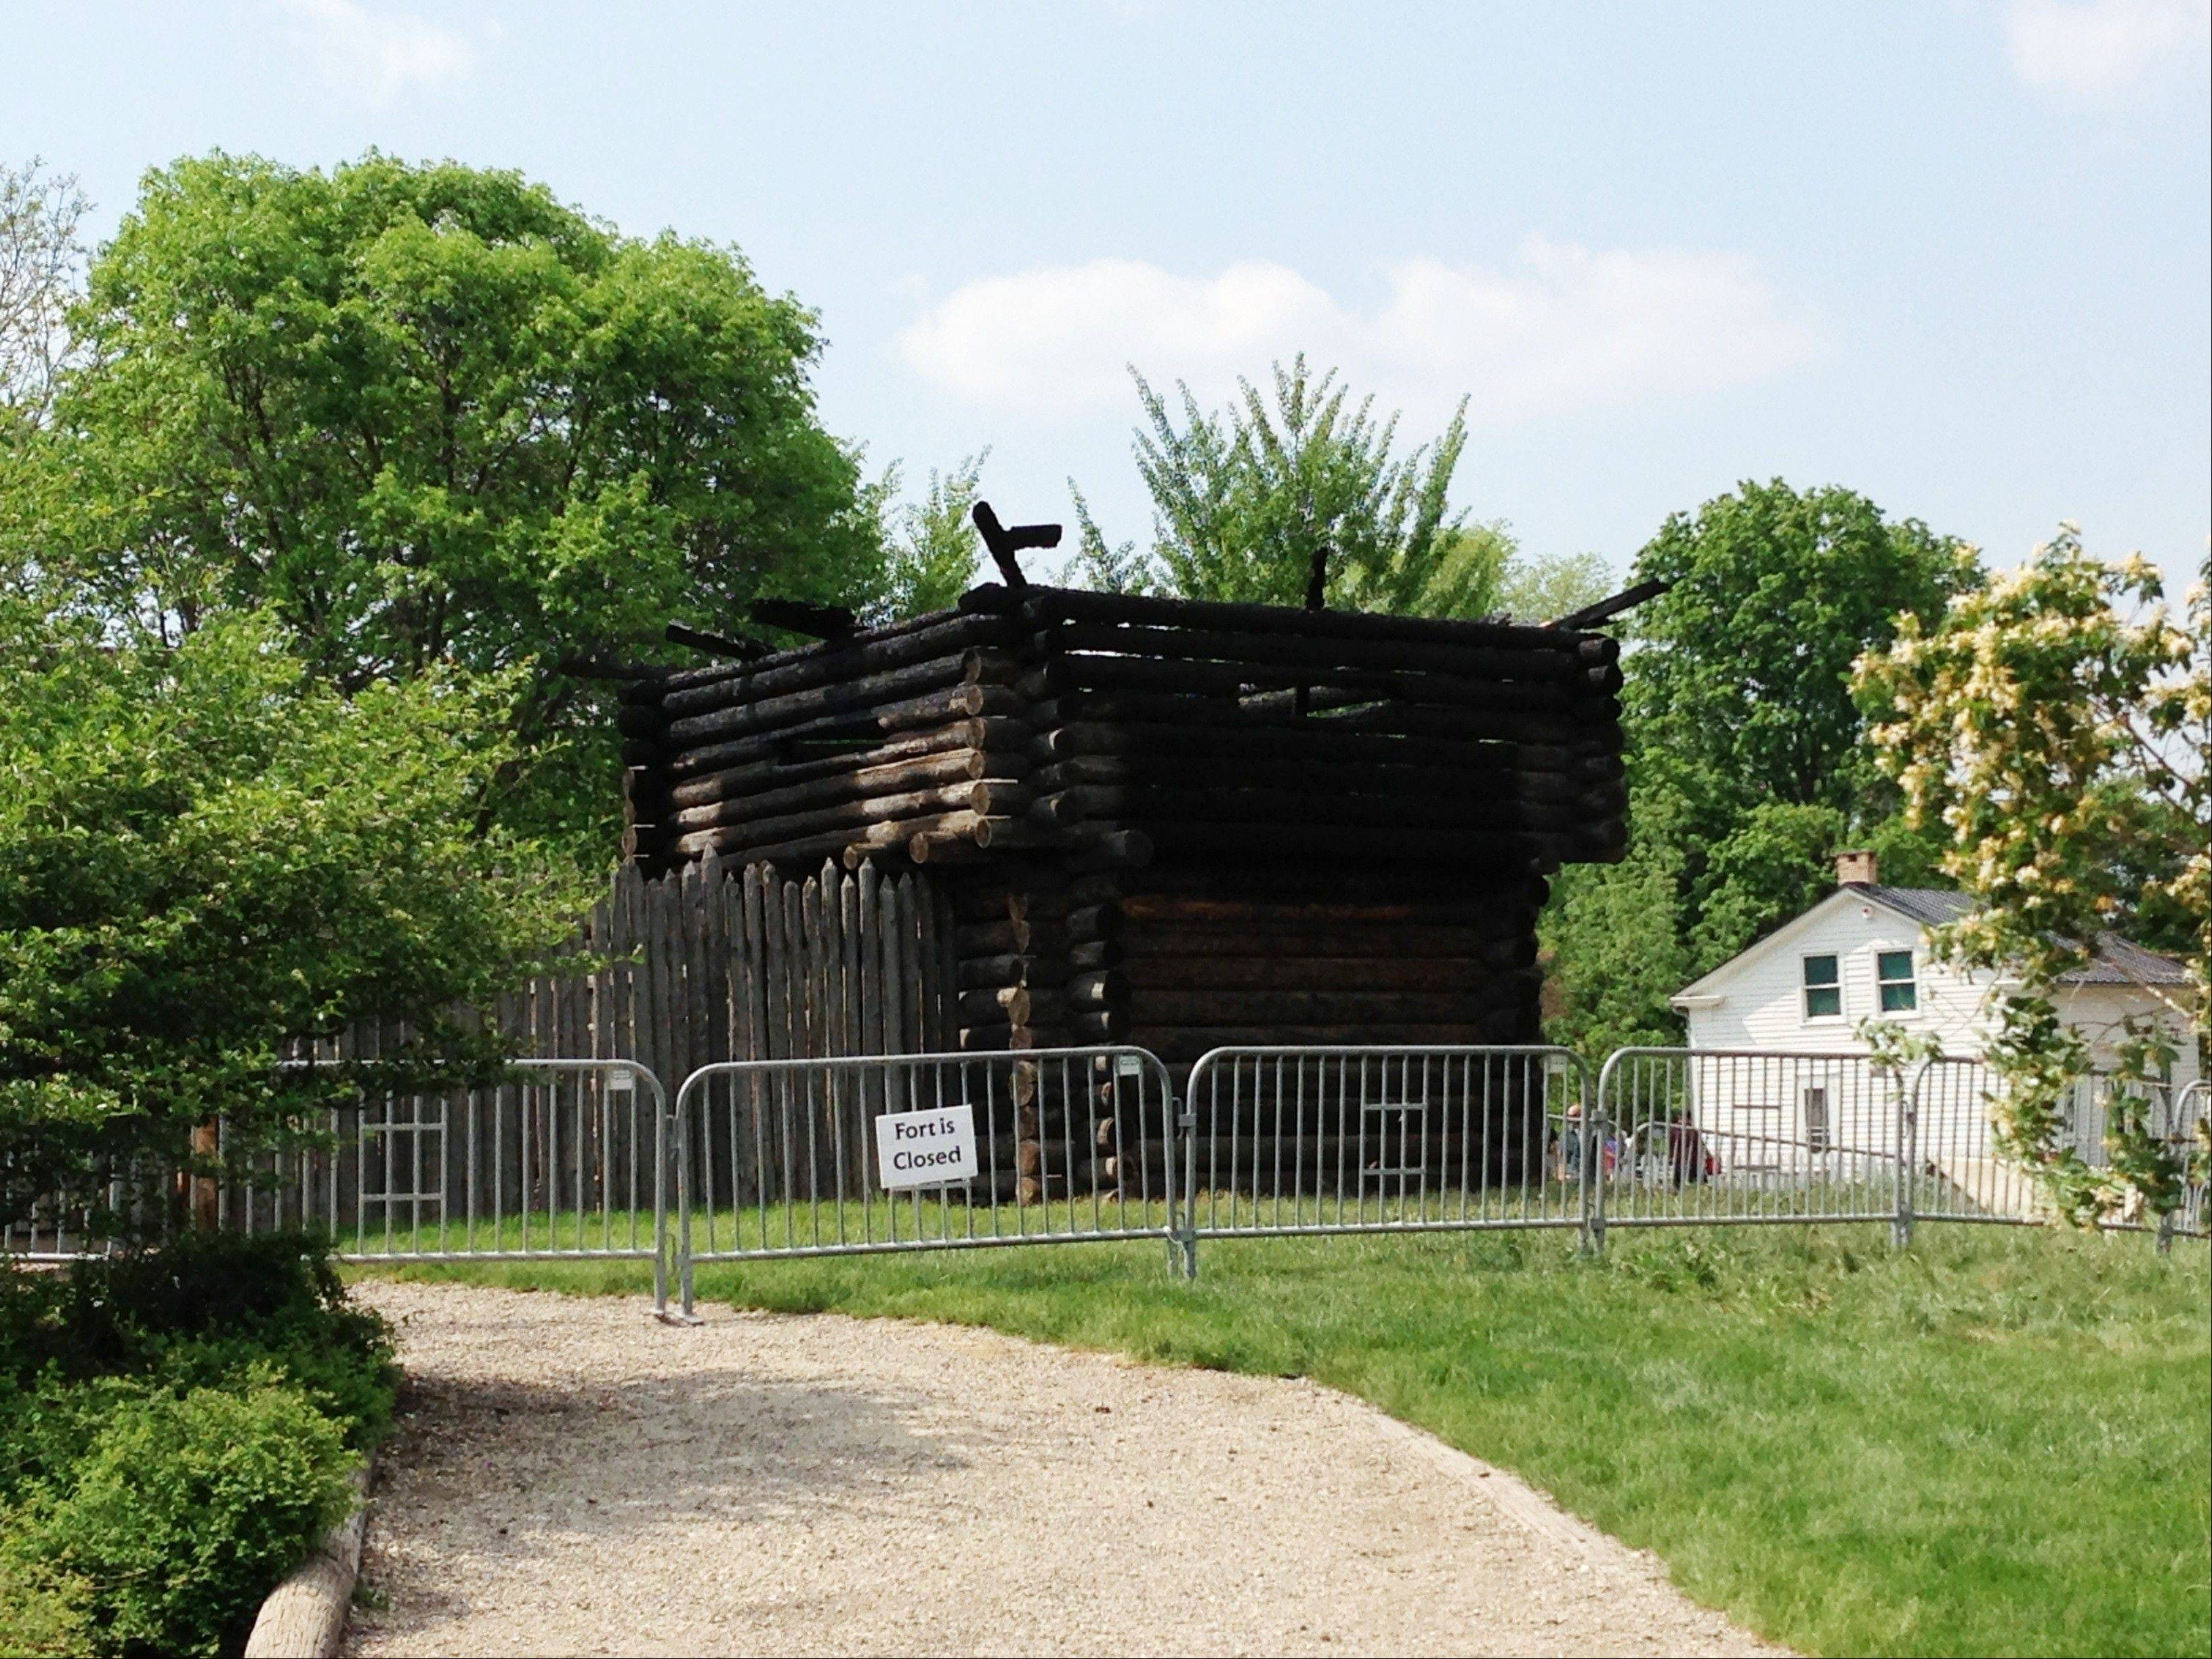 The Fort Payne building at the Naper Settlement living-history museum in Naperville was damaged by fire early Sunday morning. The fort was closed Sunday, but other portions of the Naper Settlement remained open.